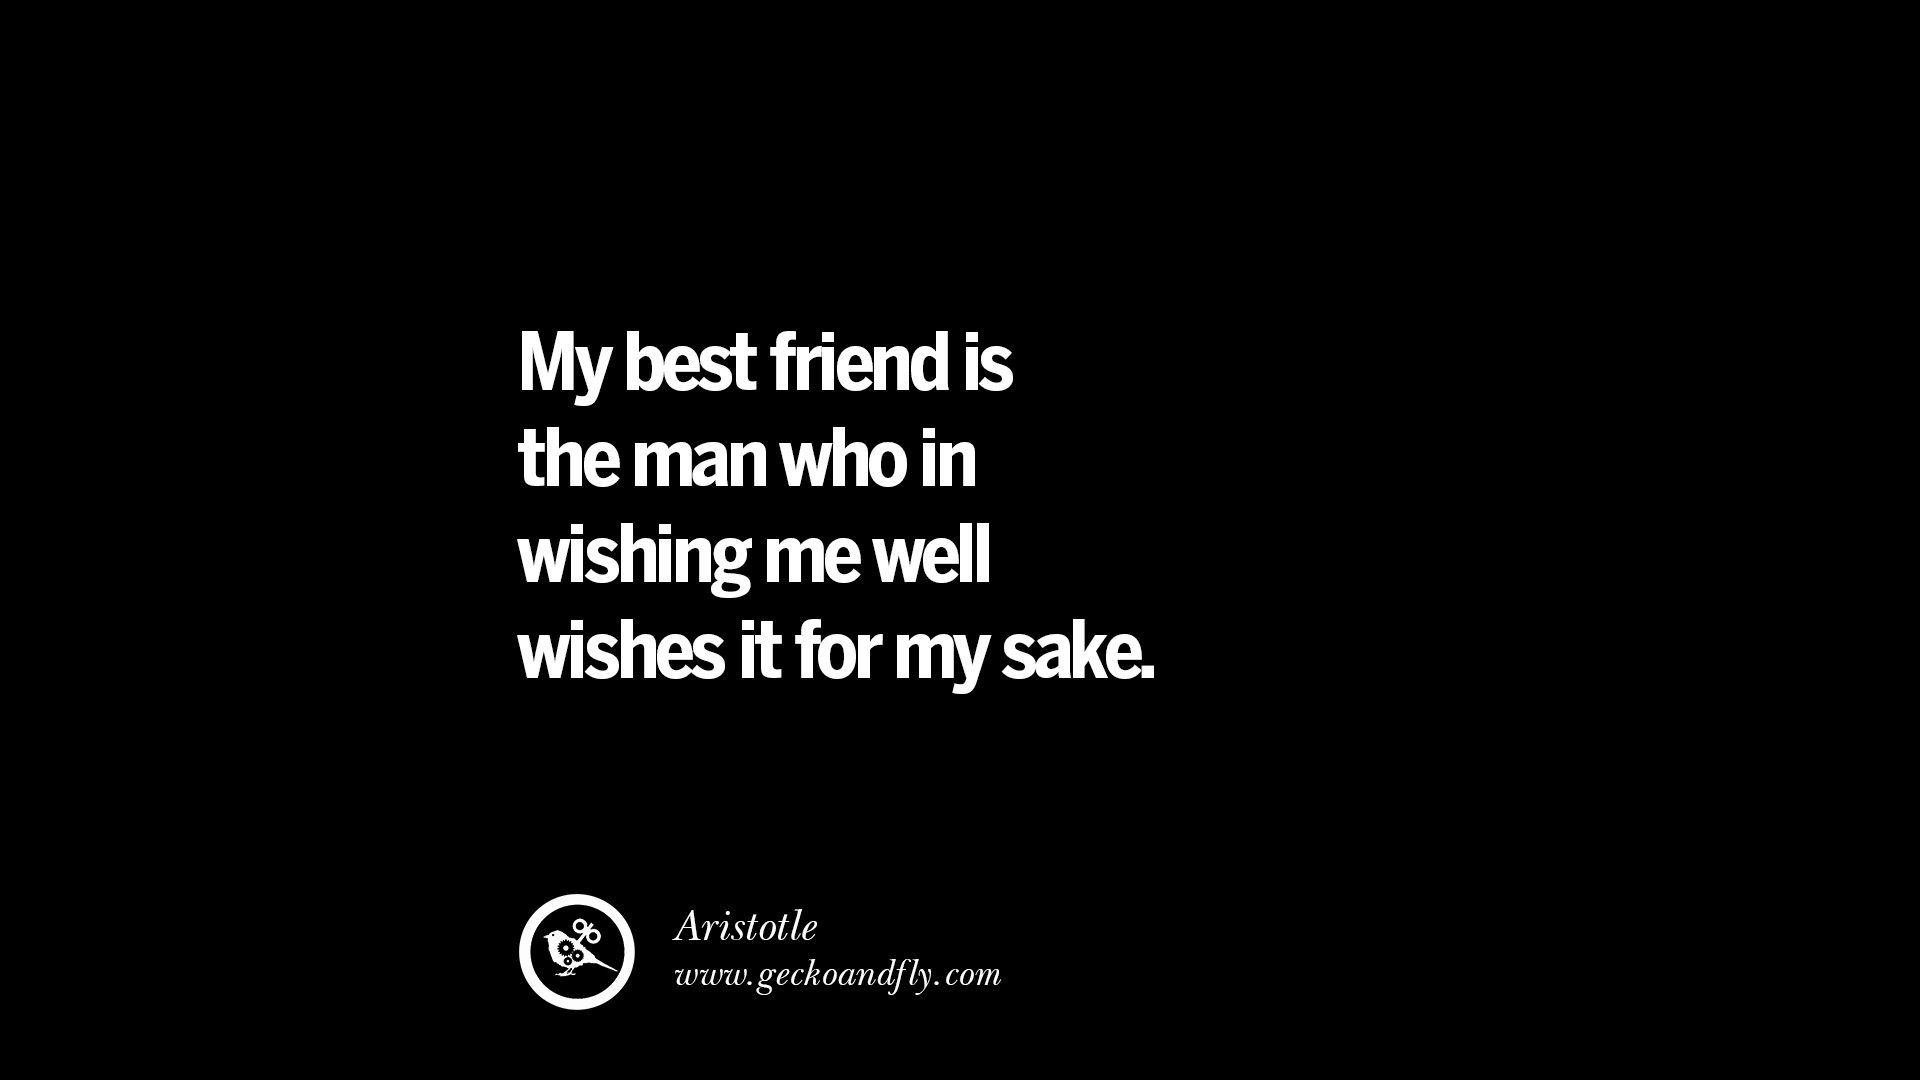 Quotes About Friendship With Images 20 Amazing Quotes About Friendship Love And Friends  Geckoandfly 2018